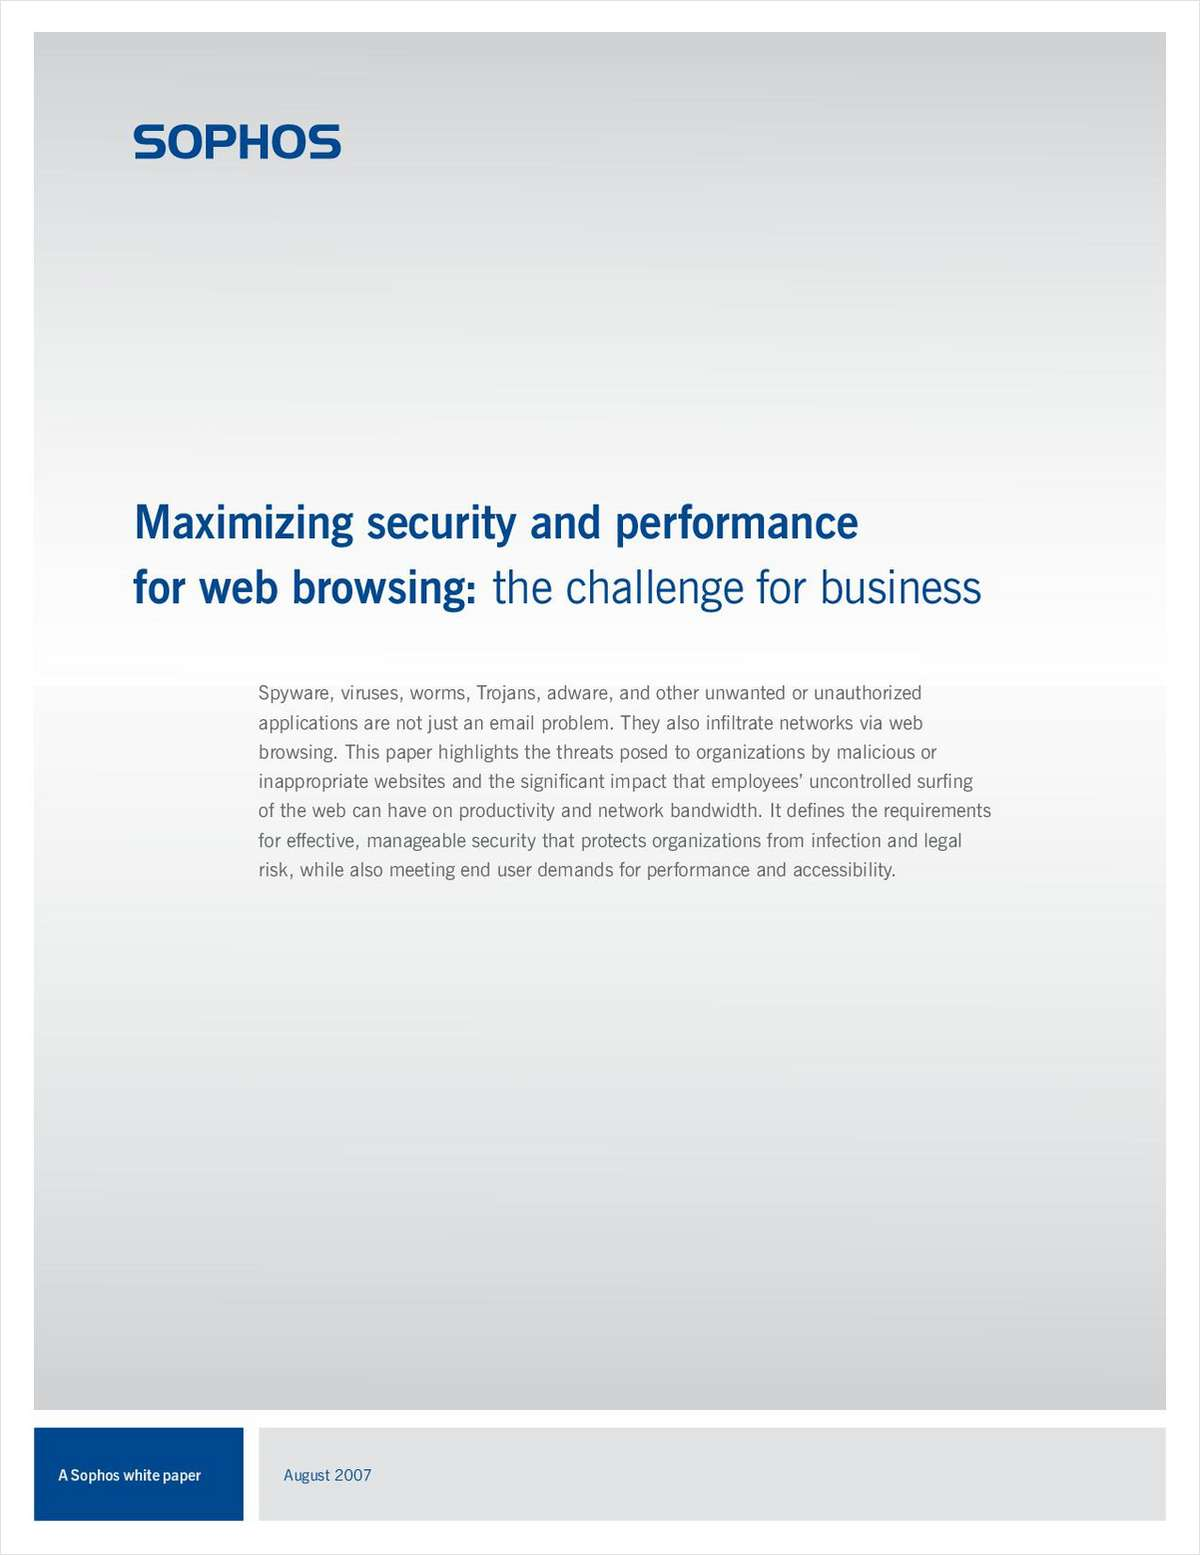 Maximizing Security and Performance for Web Browsing: The Challenge for Business